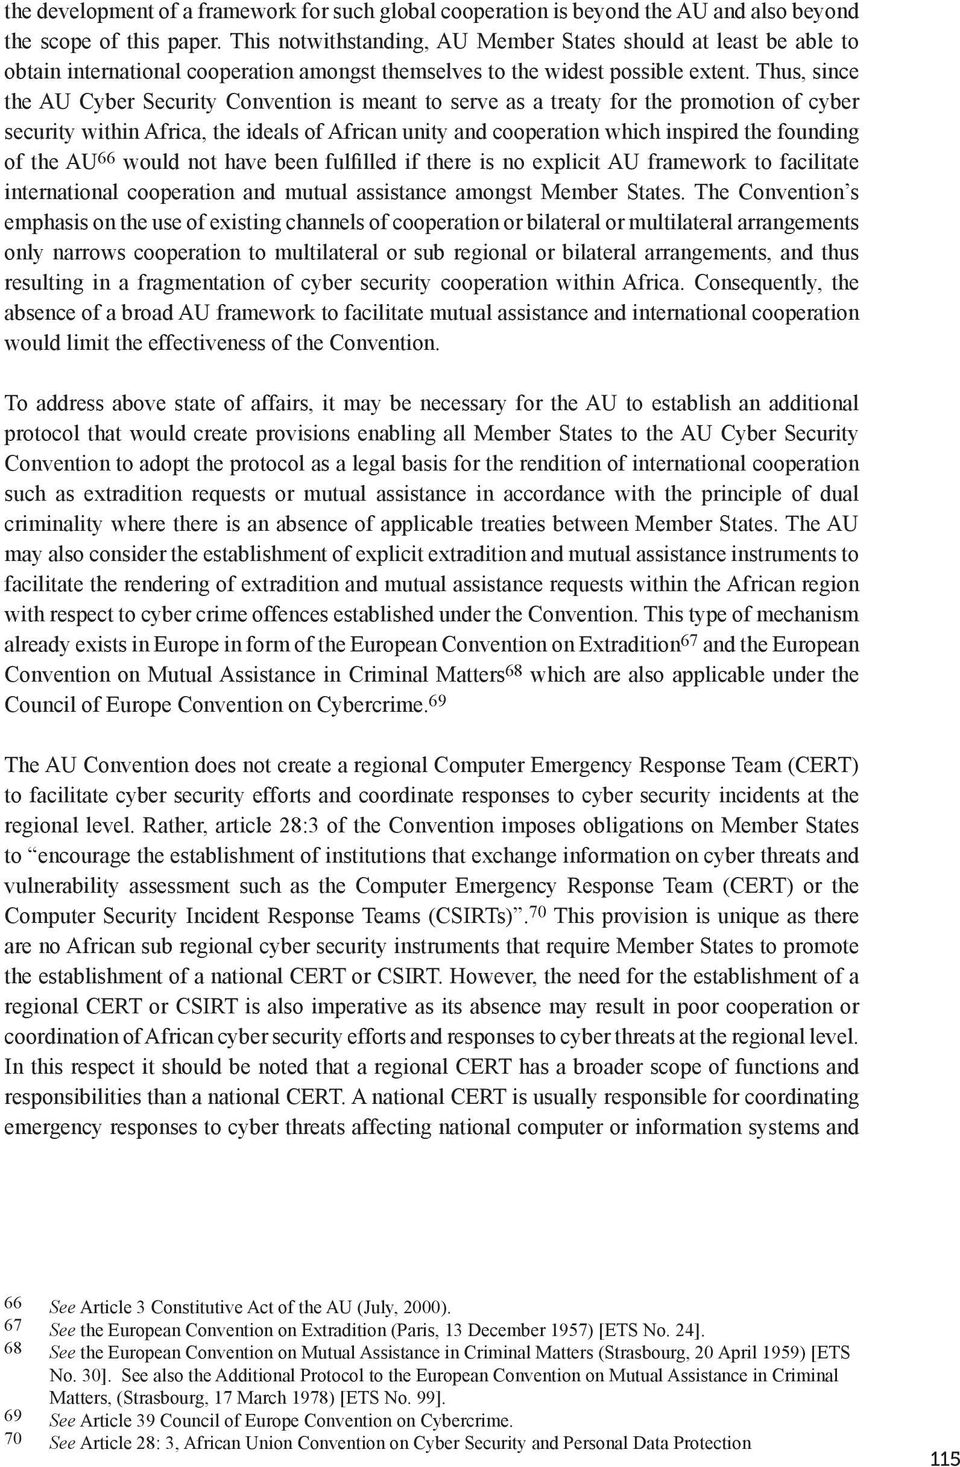 Thus, since the AU Cyber Security Convention is meant to serve as a treaty for the promotion of cyber security within Africa, the ideals of African unity and cooperation which inspired the founding